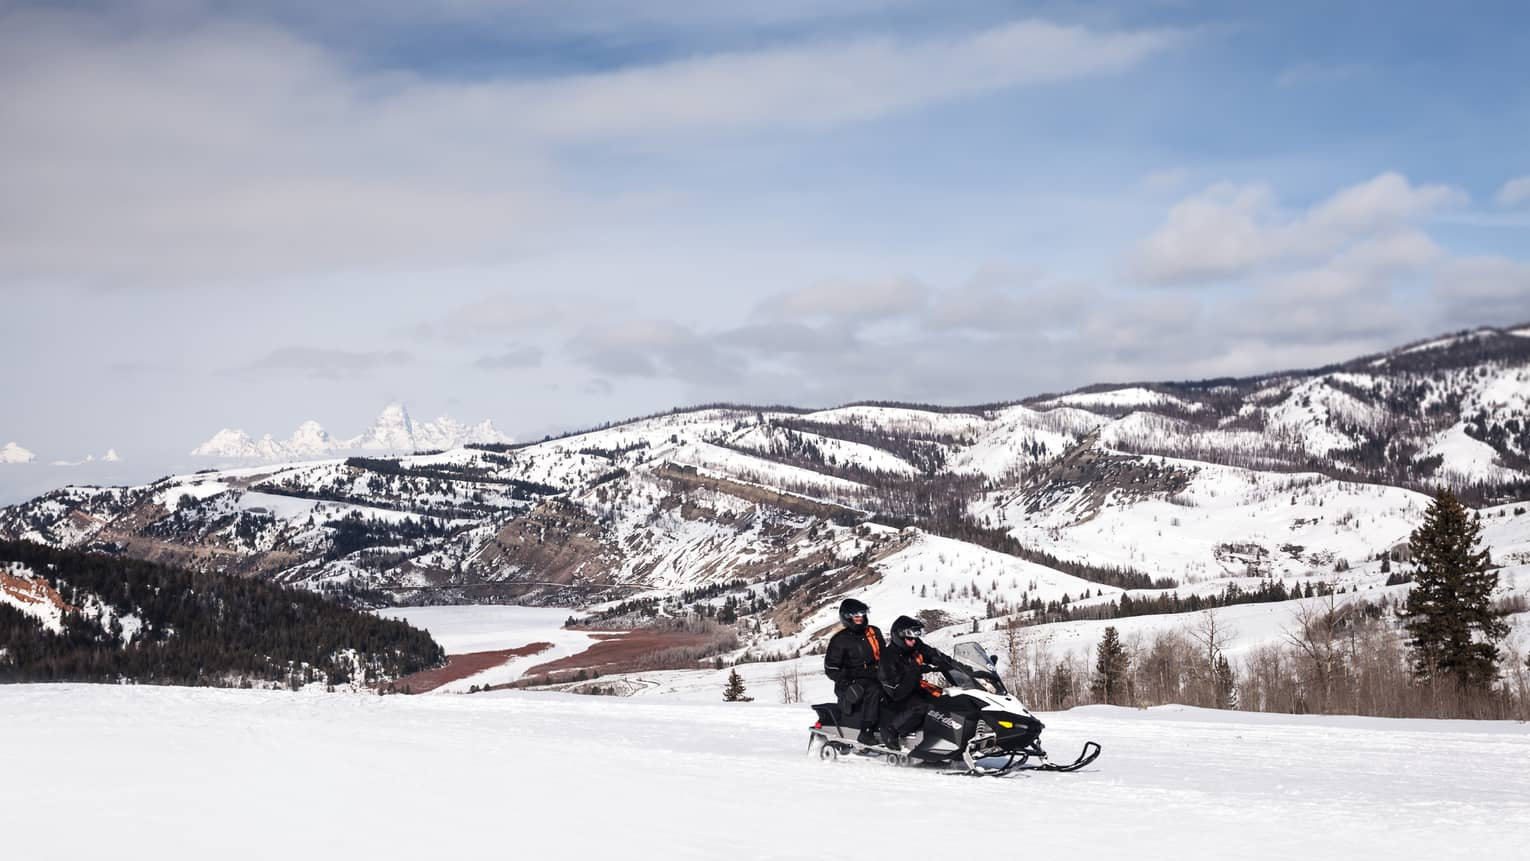 Aerial view of two people riding on a snowmobile in front of snowy mountains